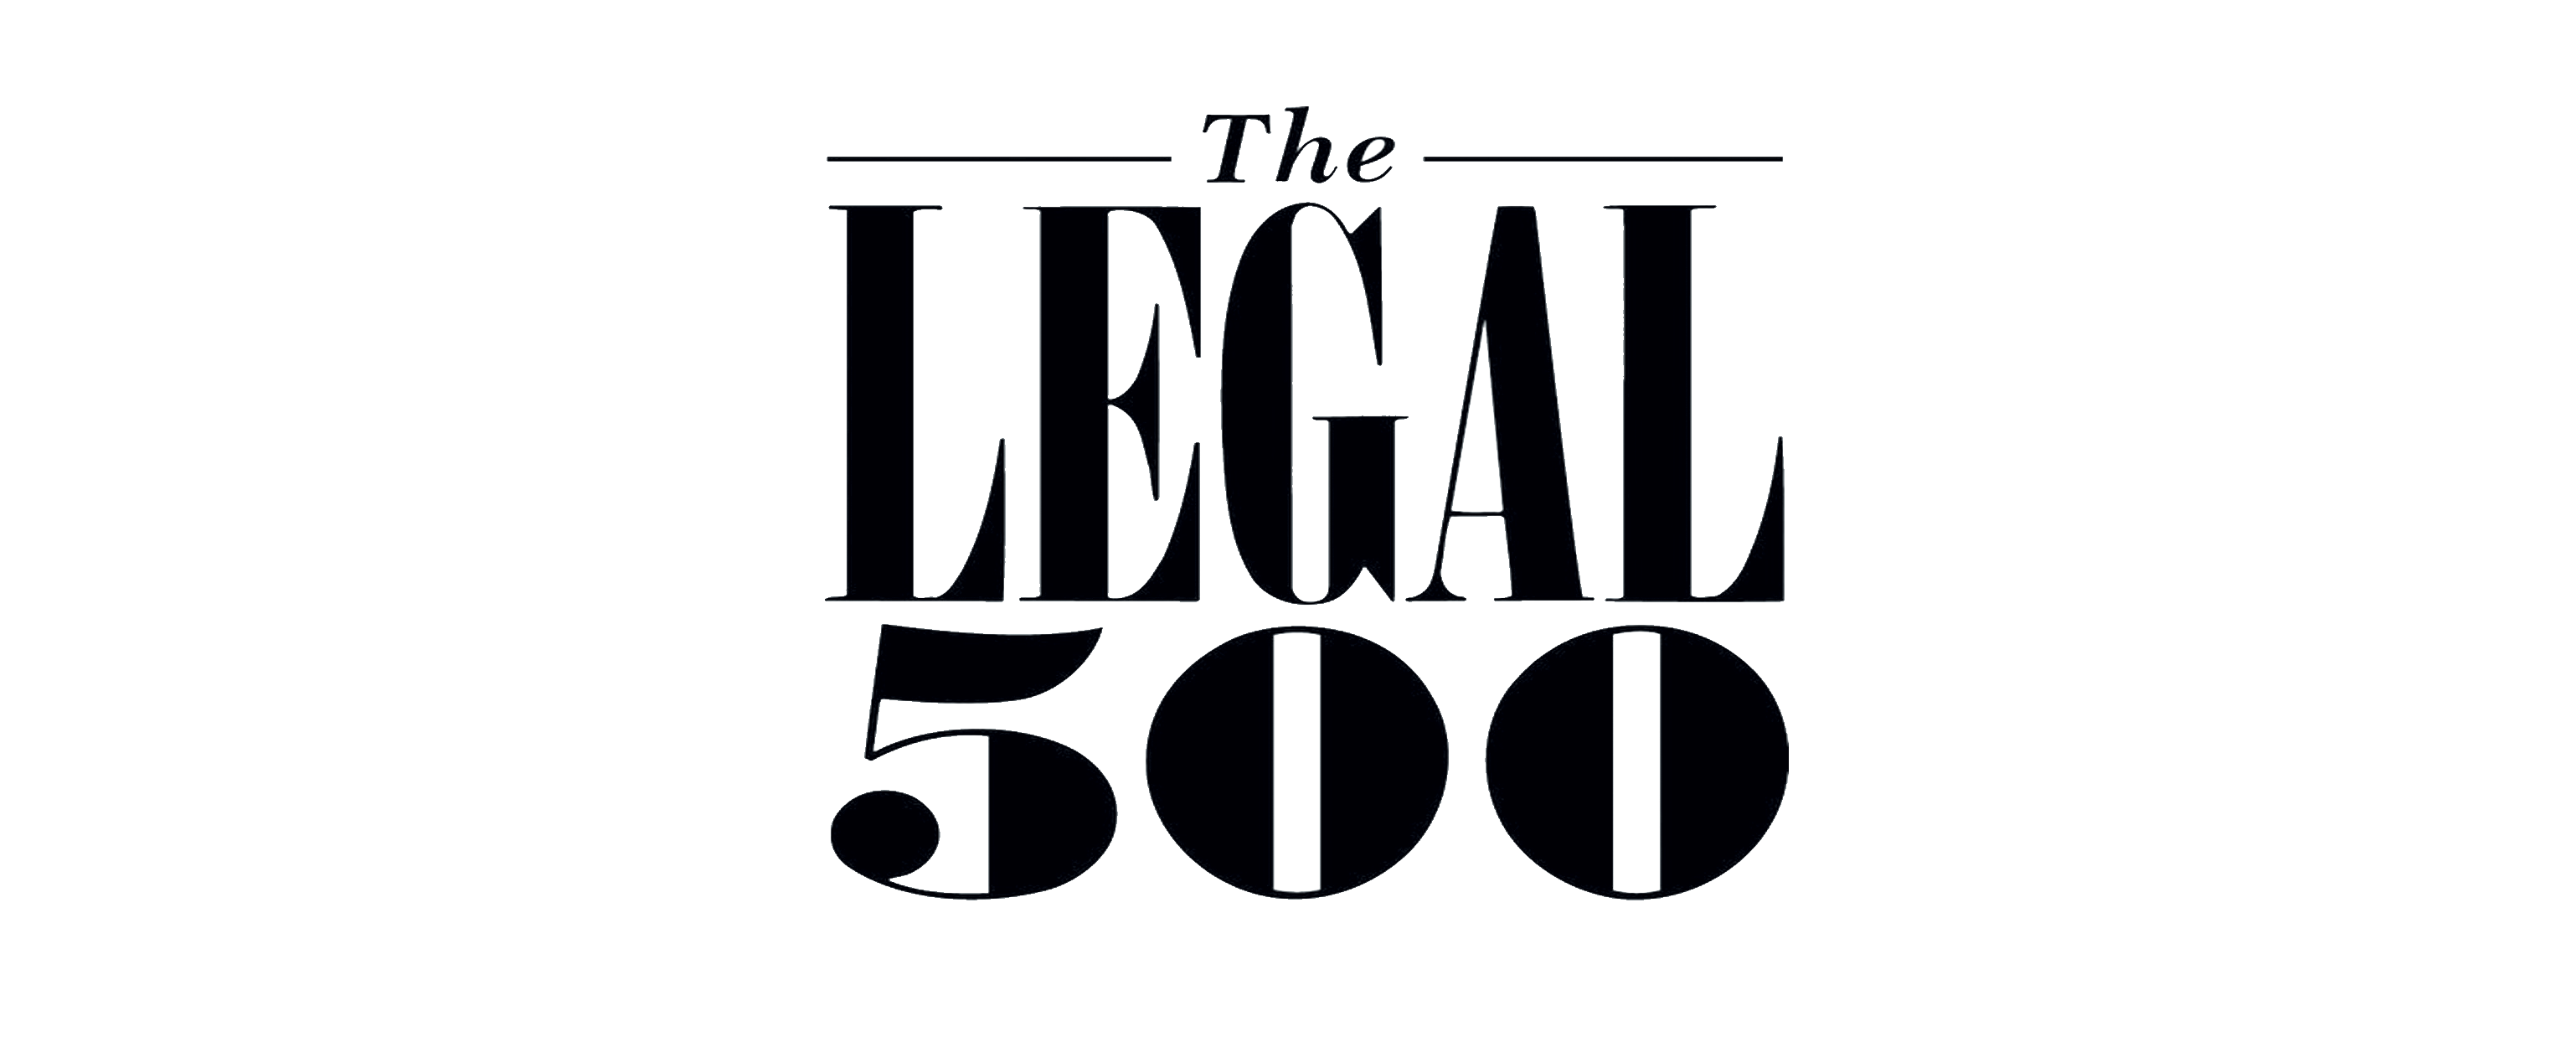 legal500Black.png